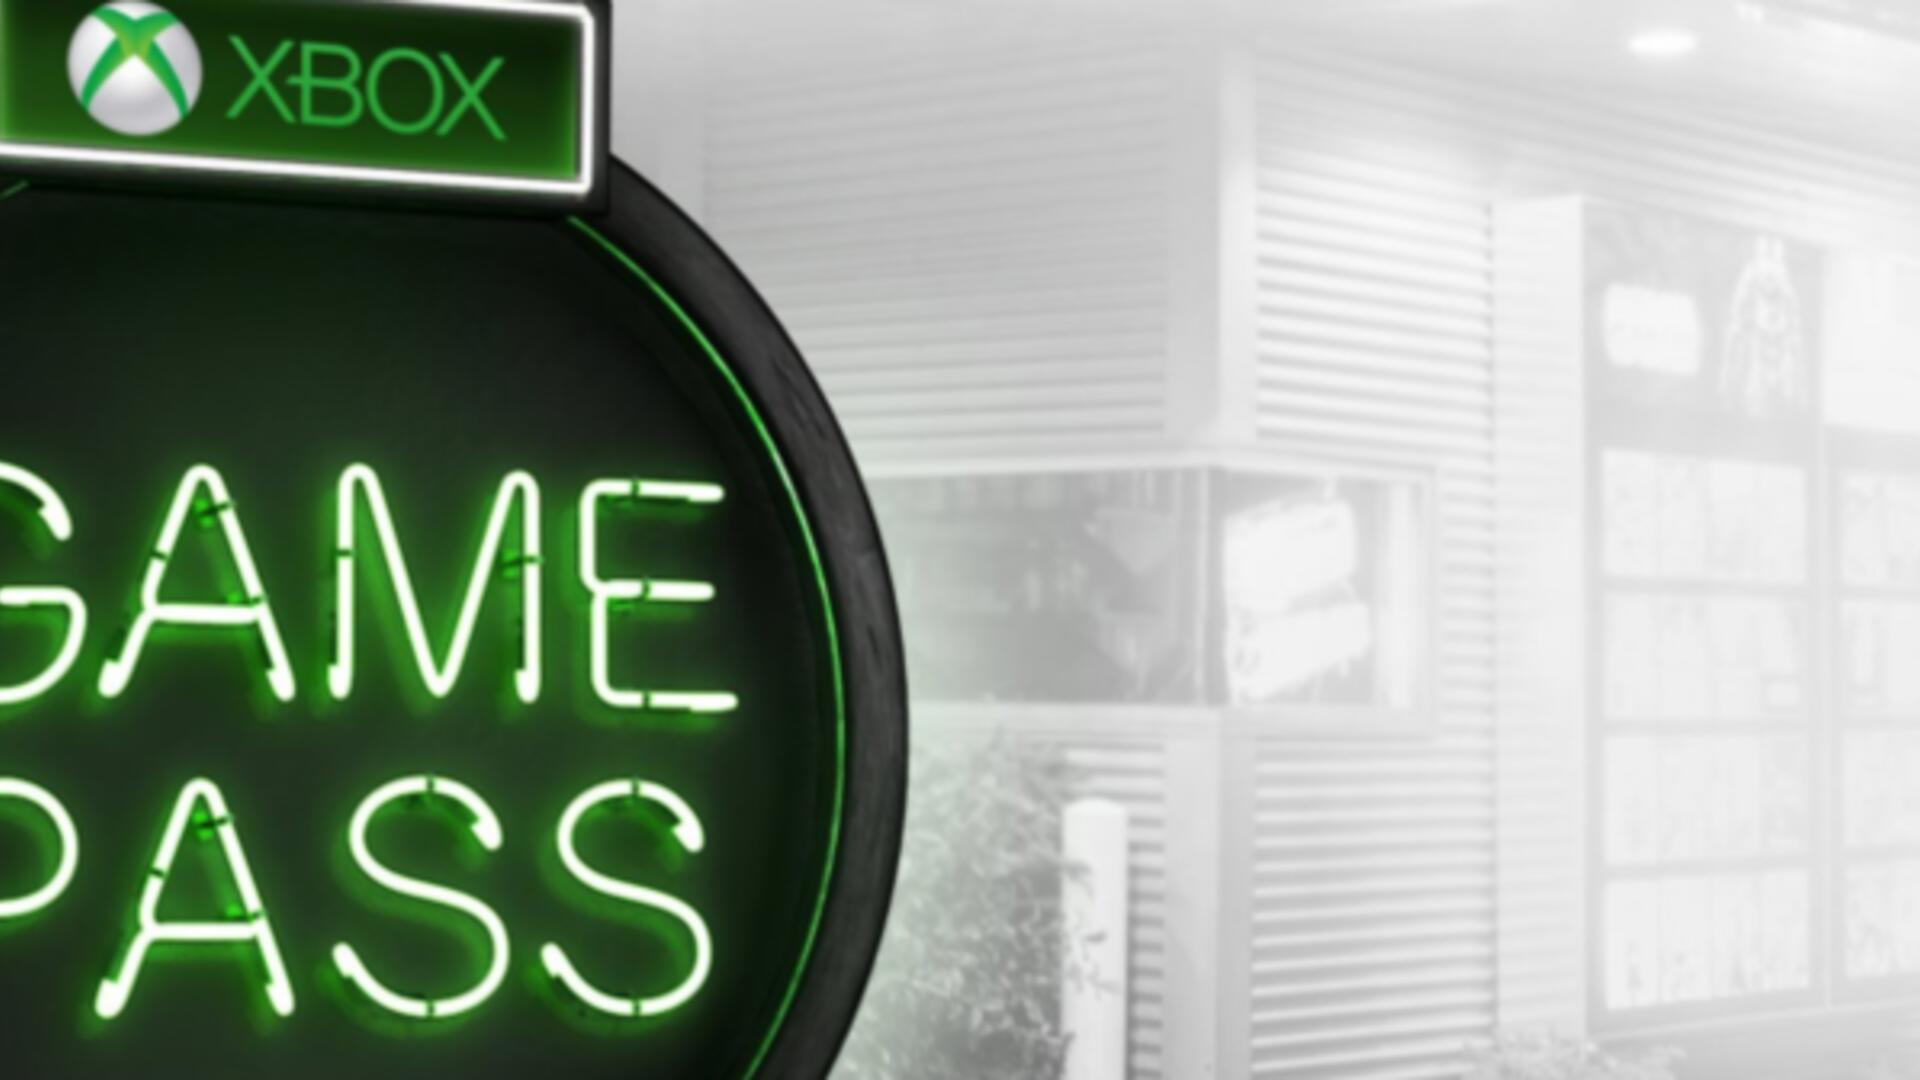 Get 12 Months Xbox Game Pass for the Price of 7 - $69.99 Limited Time Black Friday Offer